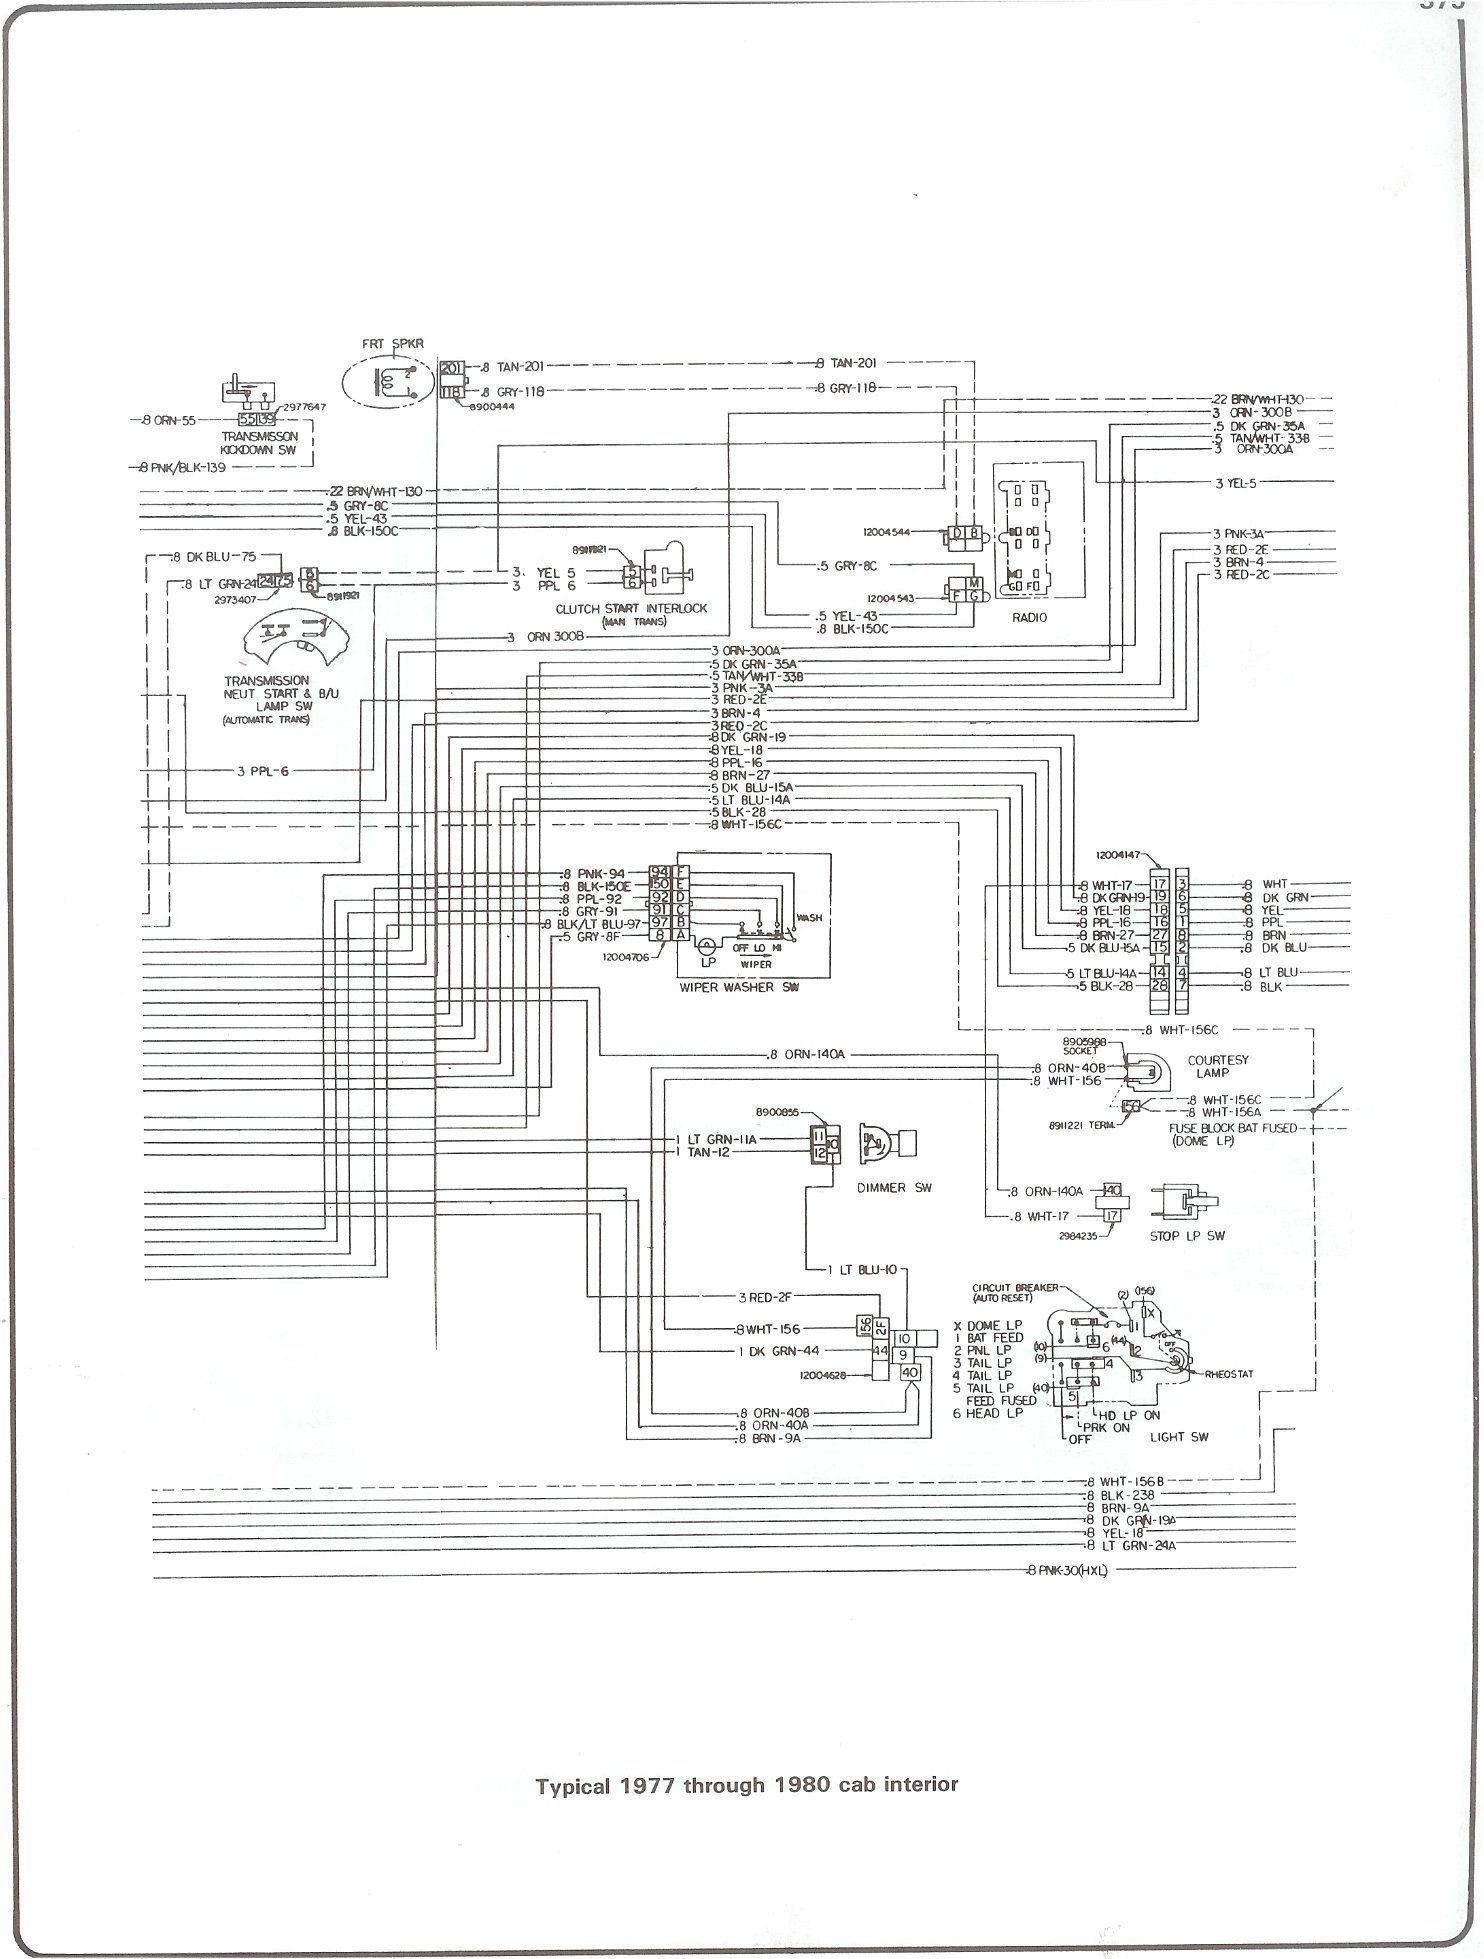 77 80_cab_inter complete 73 87 wiring diagrams 1985 chevy truck wiring harness at bayanpartner.co